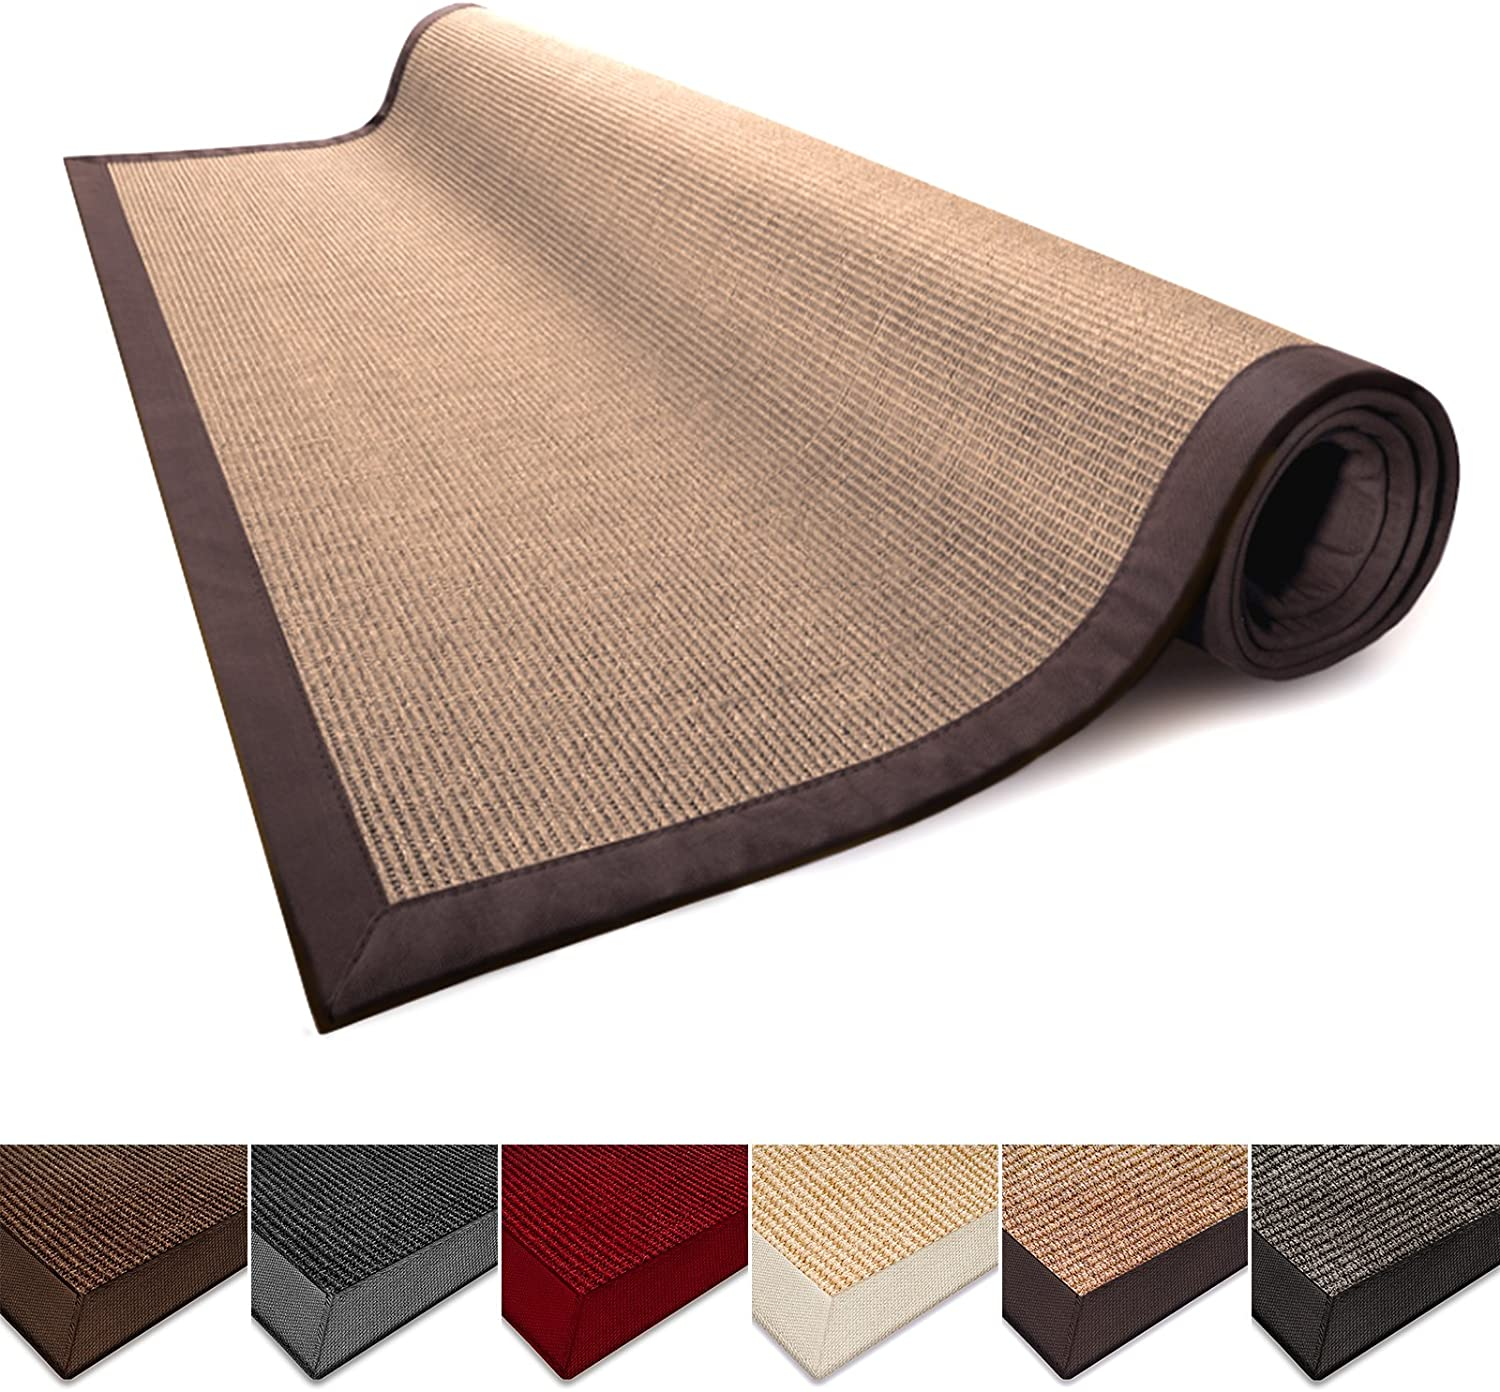 casa pura Sisal Rug Runner - 100% Natural Fiber Area Rug | Non-Skid Rustic Entryway Rug, Living Room Carpet or Kitchen Rugs and Sizes | Cork - 4' x 6'